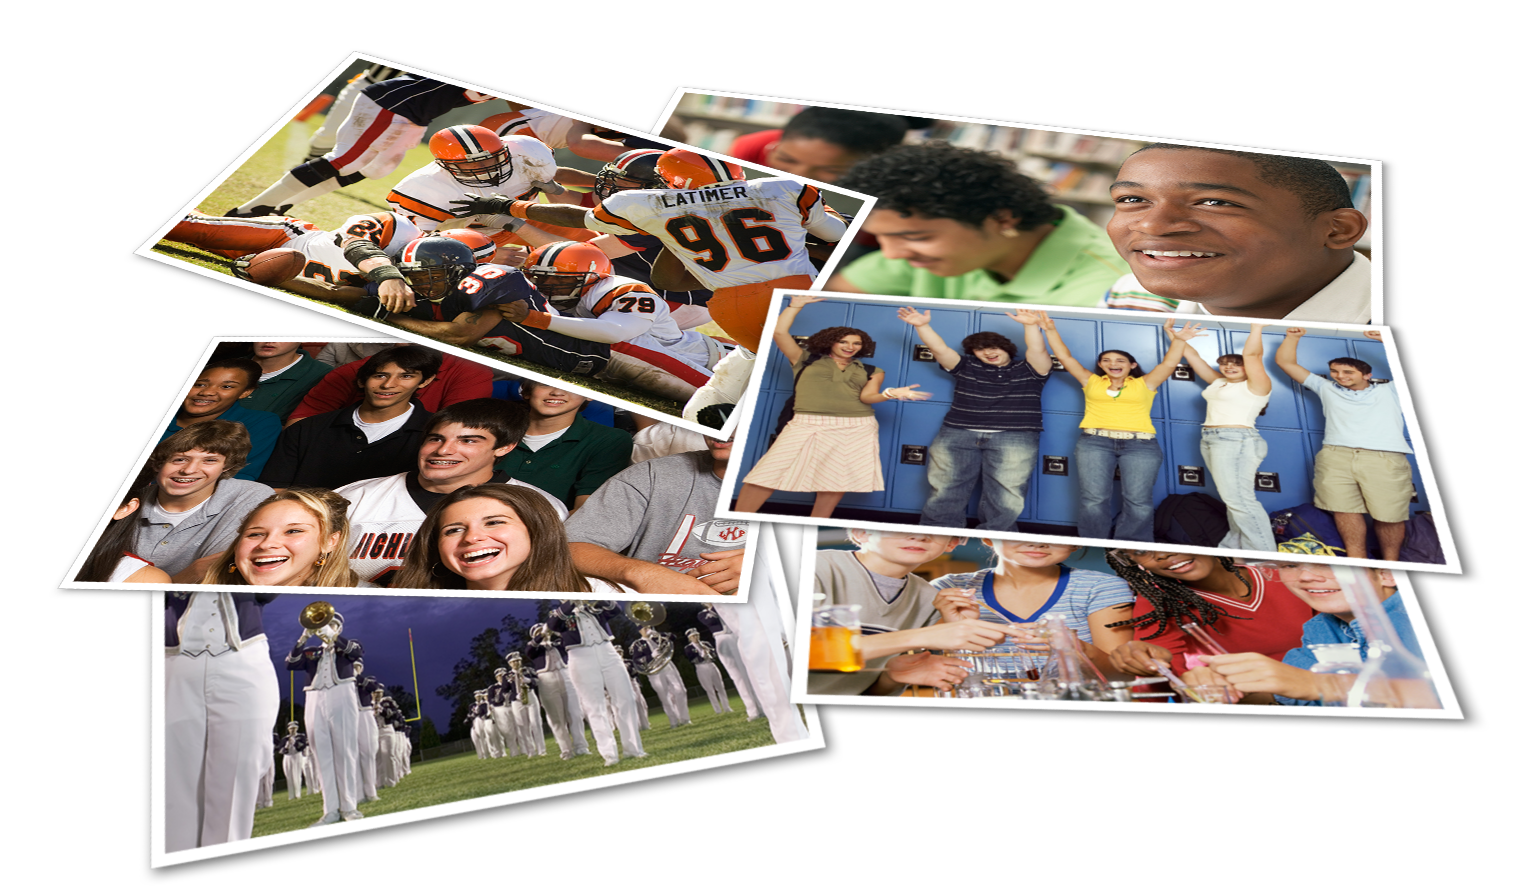 Yearbook Designs | Yearbook Design Ideas | Yearbook Cover Design